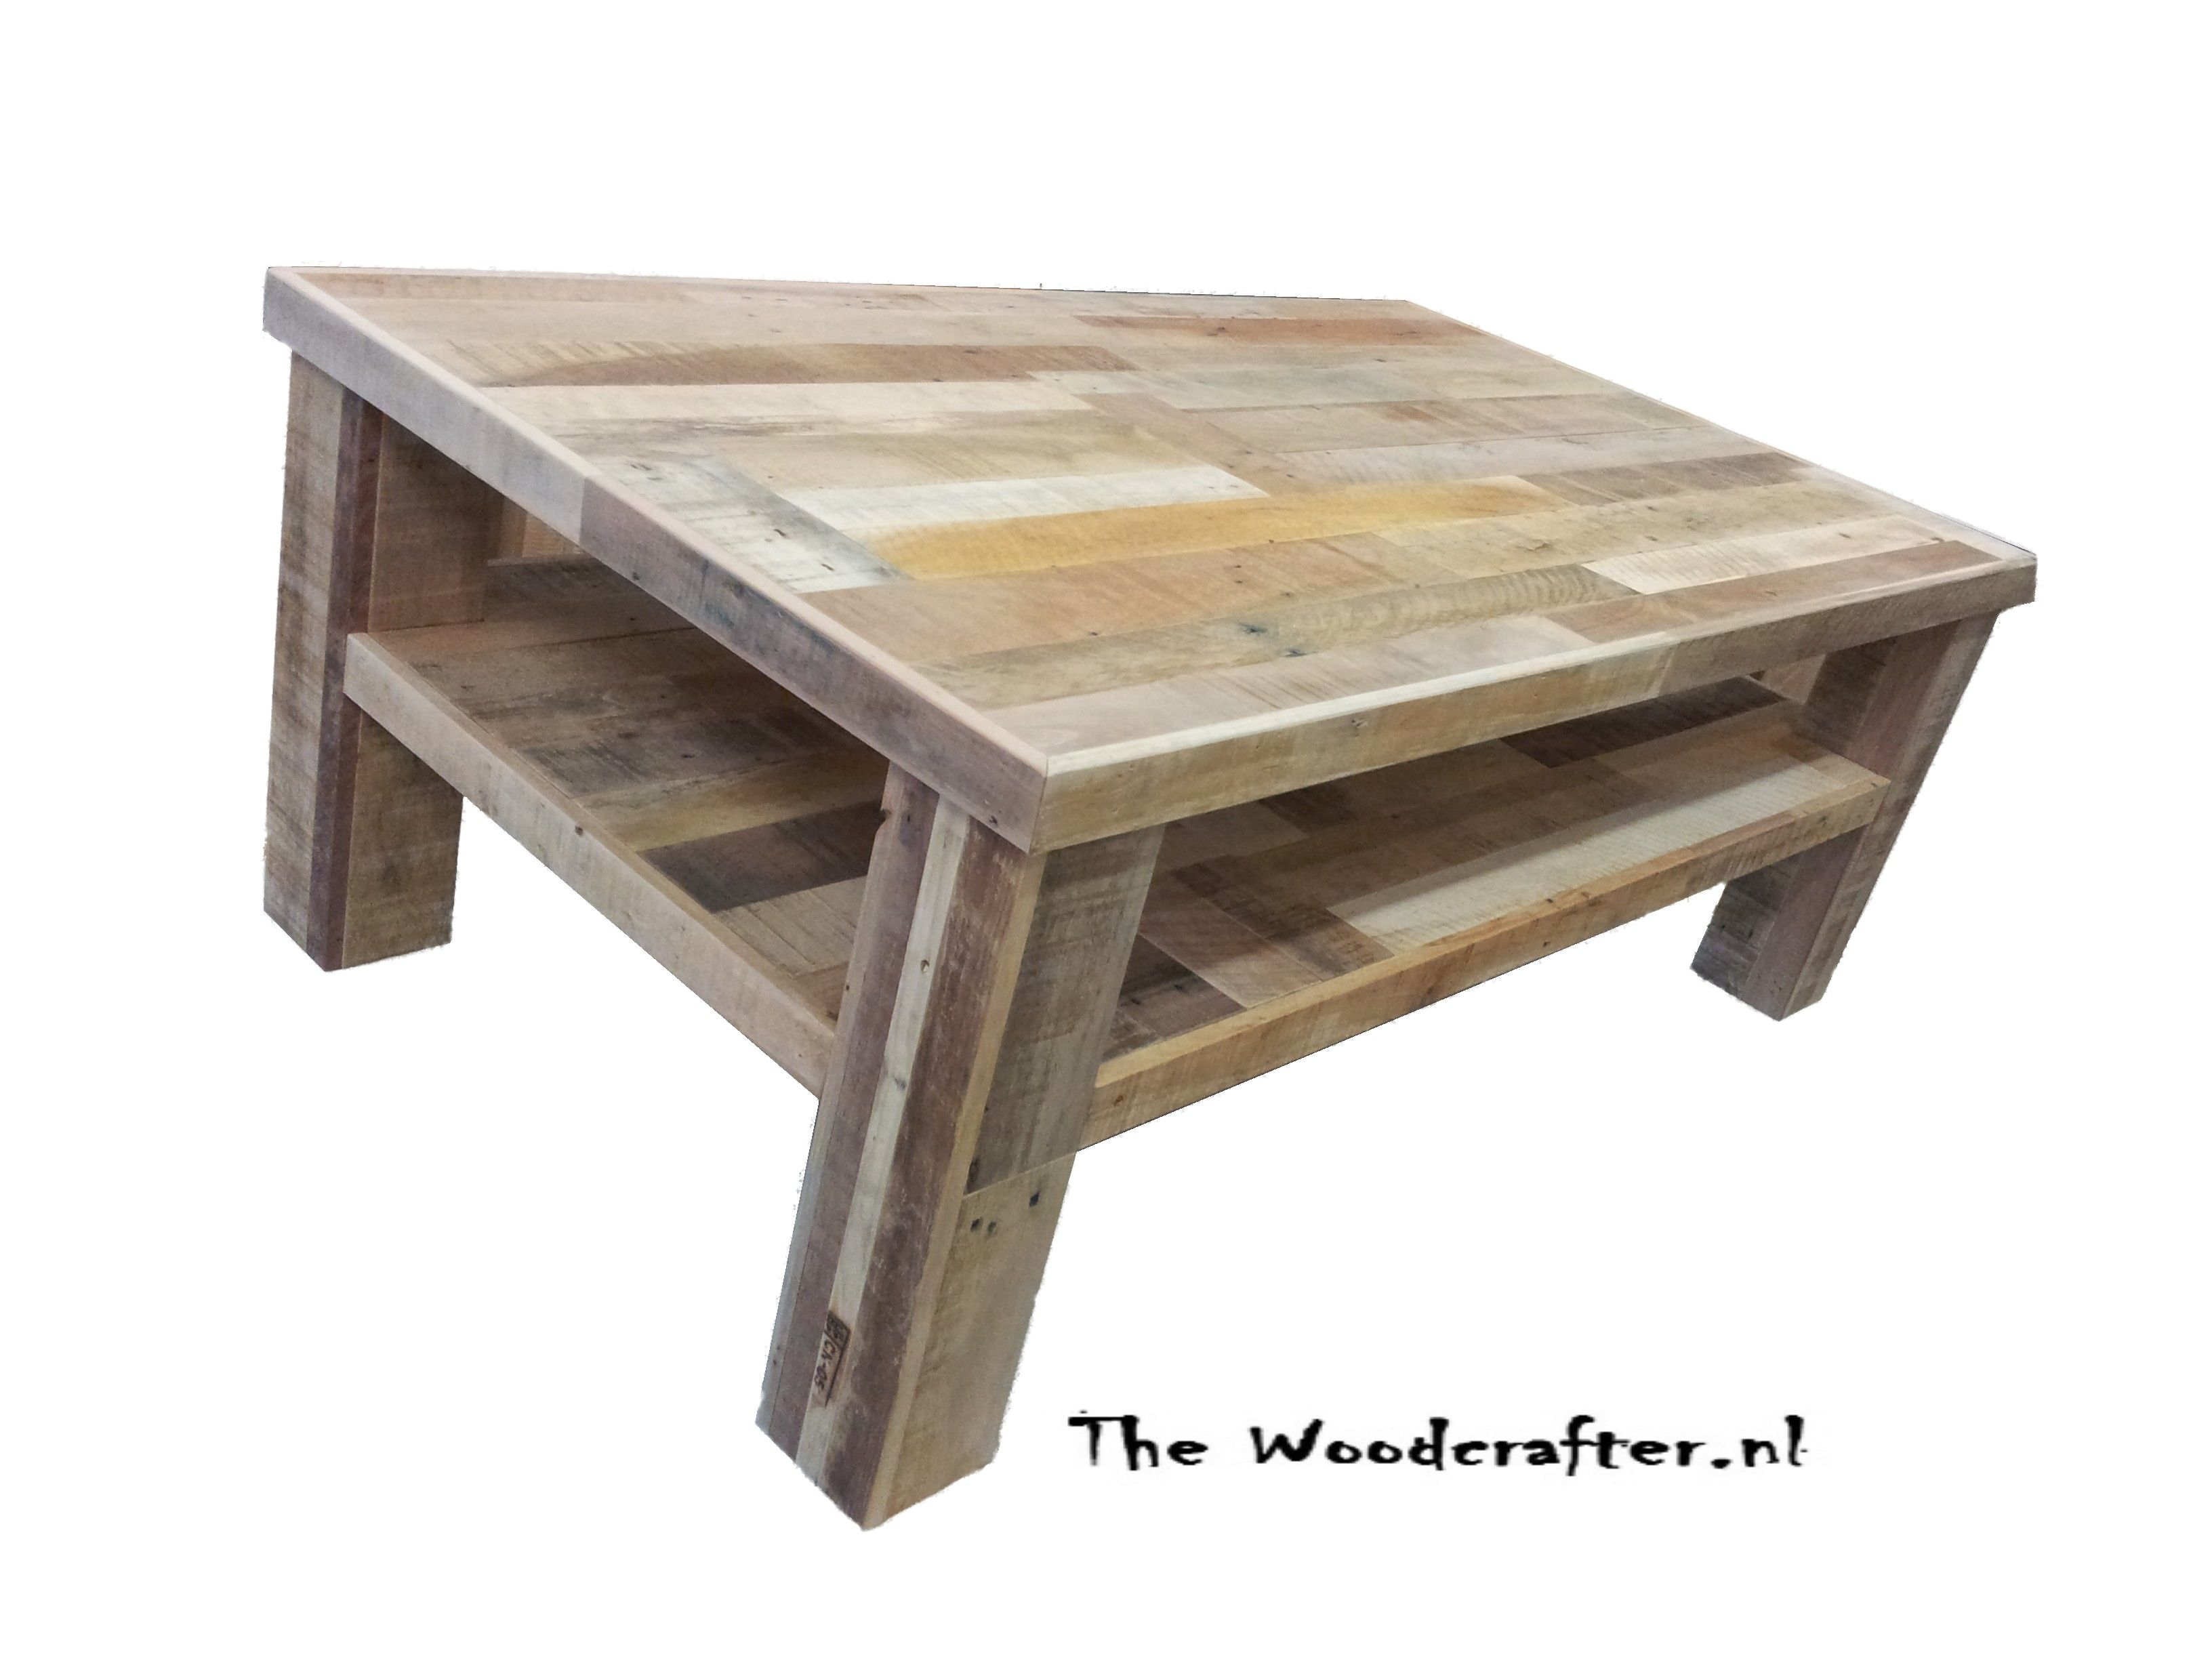 nice handmade table from reclaimed wood Sloophout